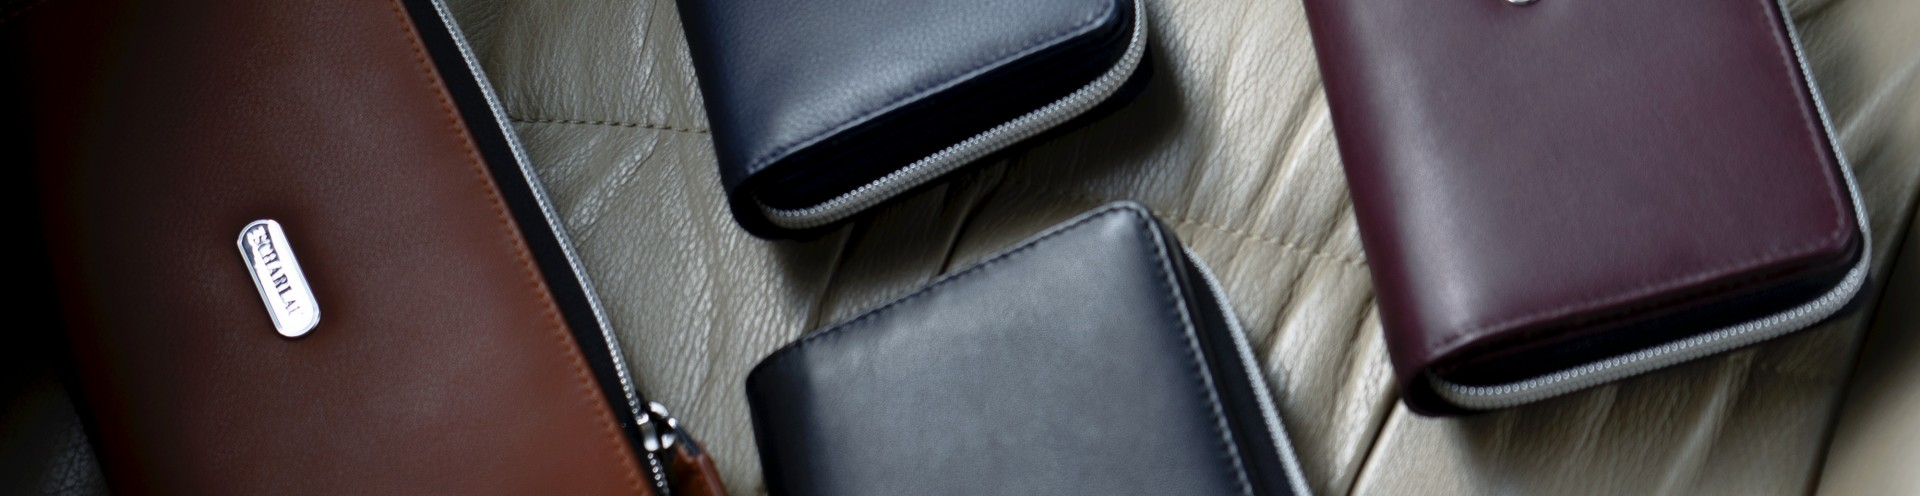 Small Leather Goods for Men and Women